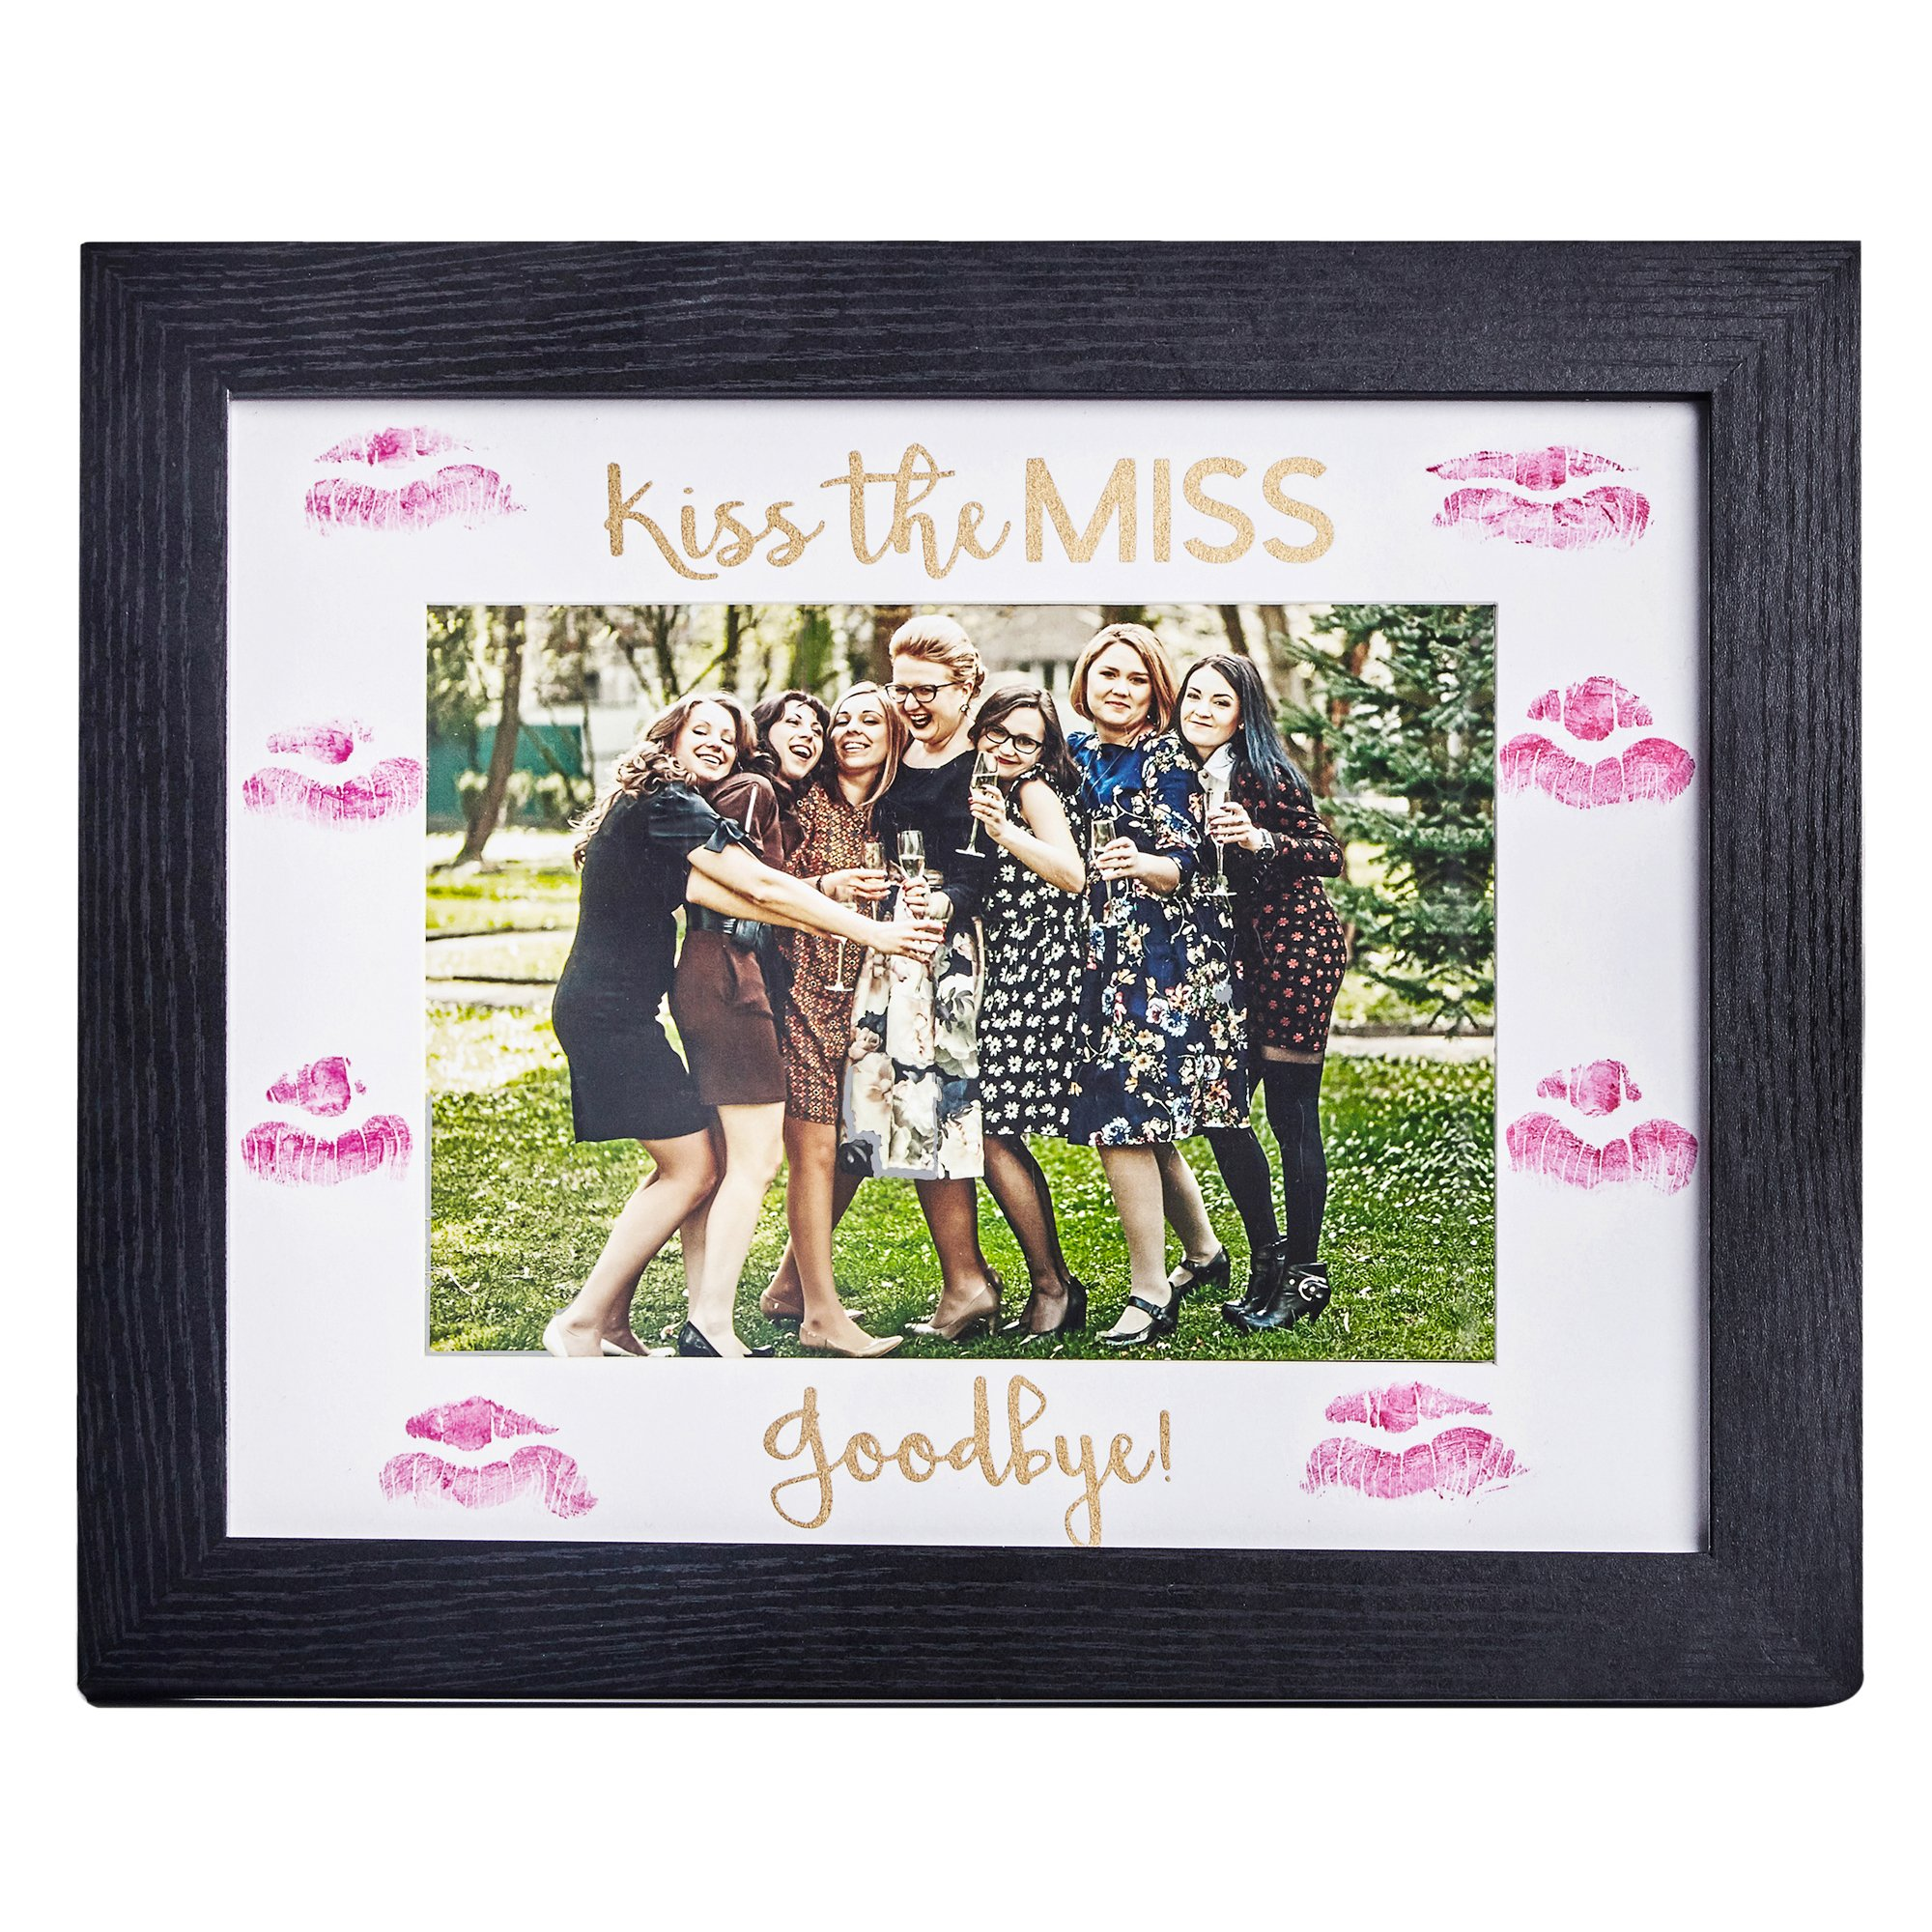 Bachelorette Box Bachelorette Party Picture Frame by Kiss the Miss Goodbye